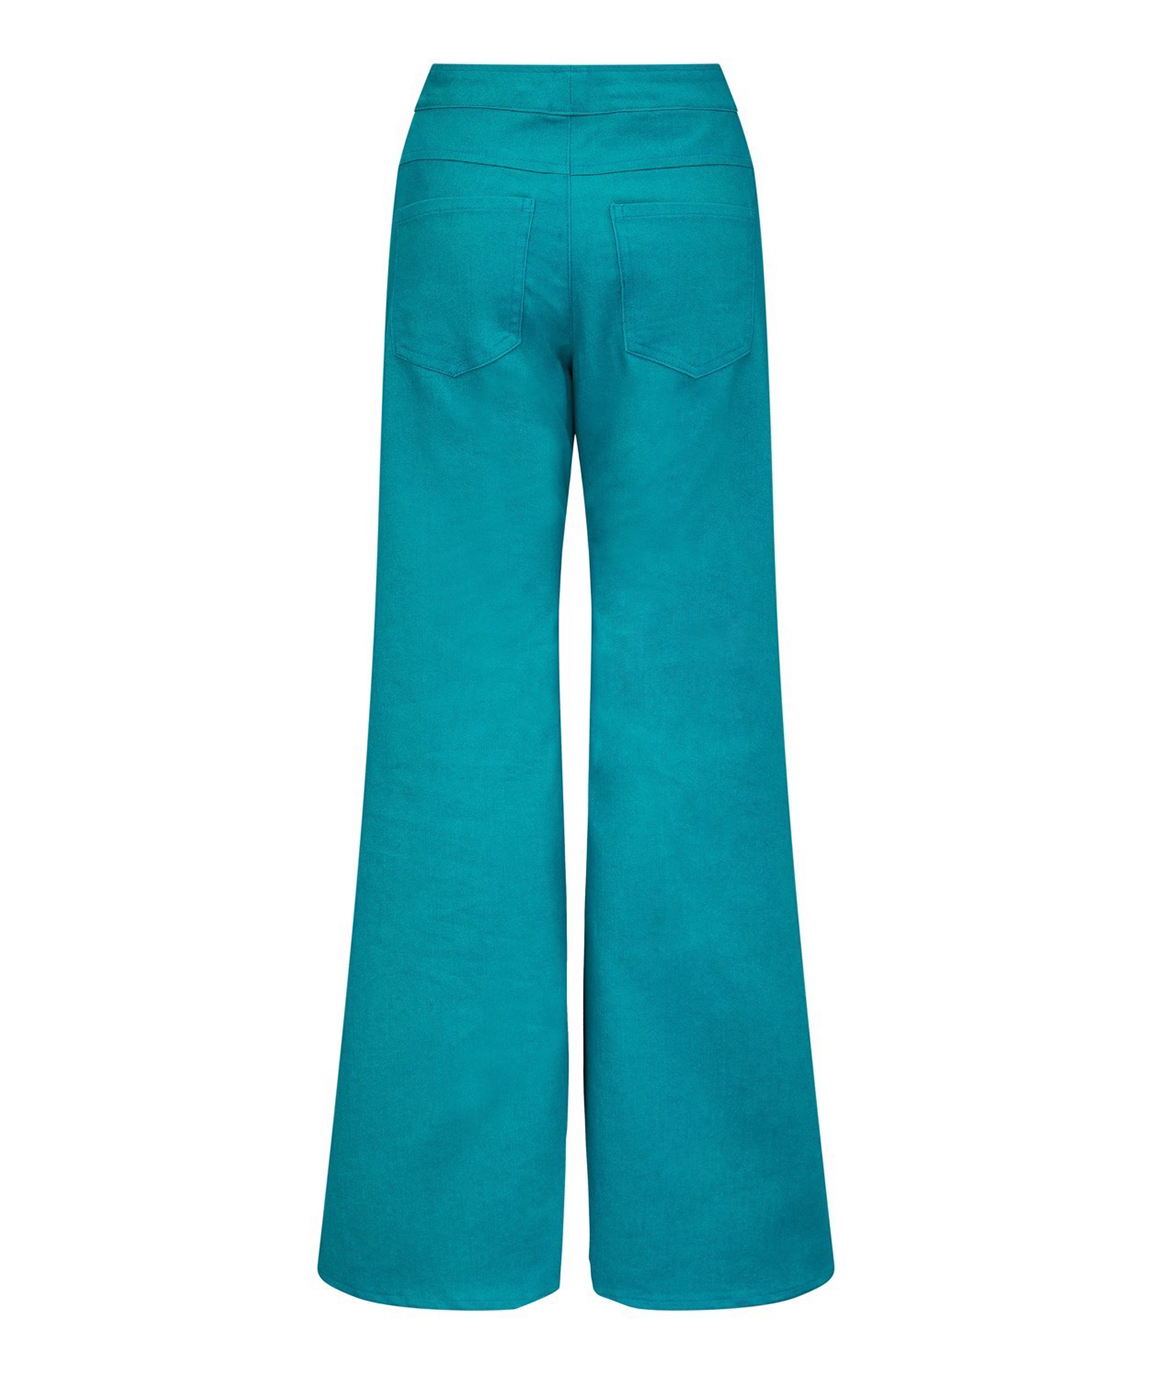 Humbug Wide Leg Jeans – Turquoise